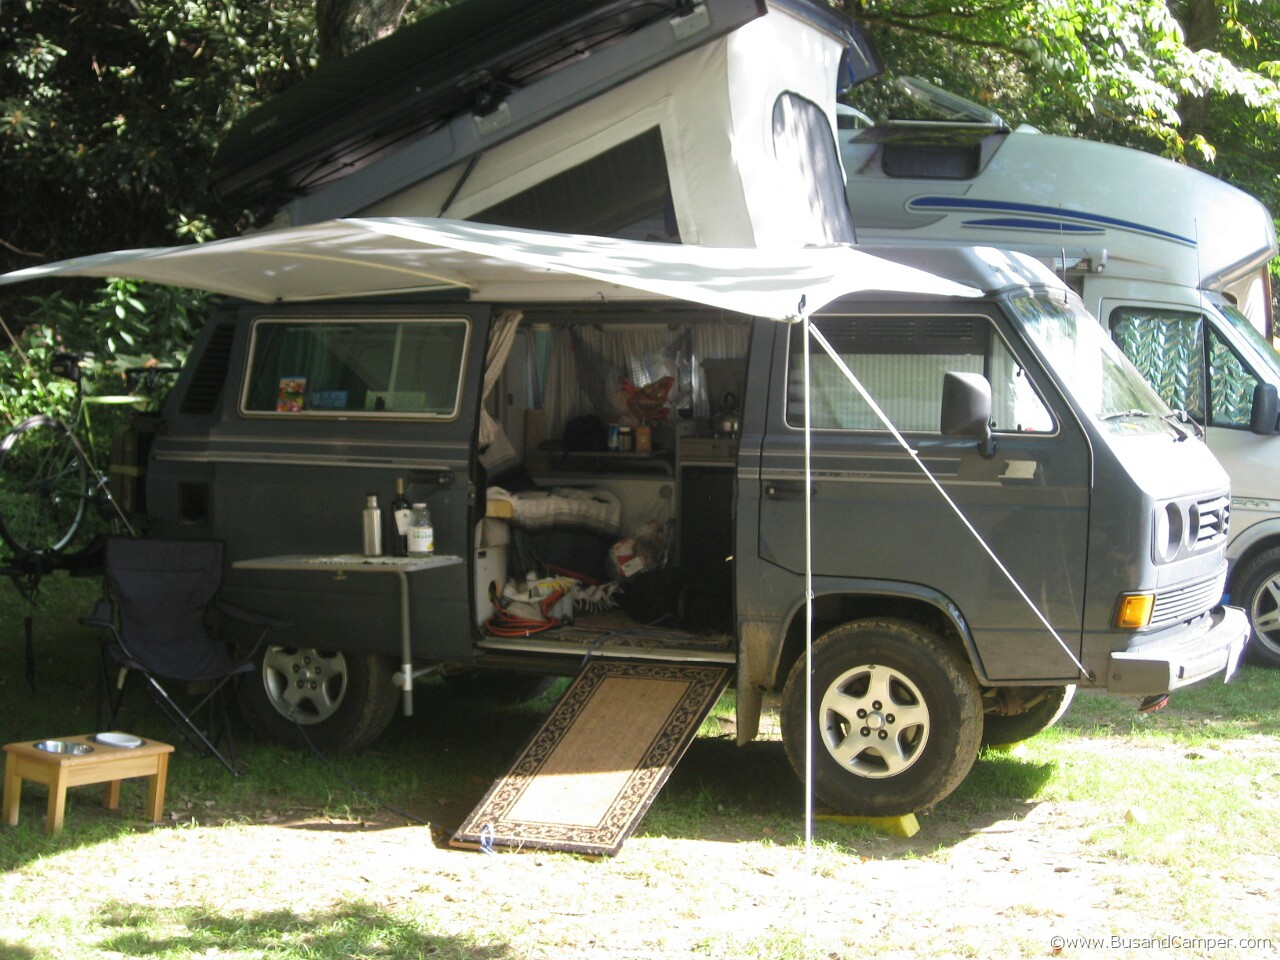 Grey Westy setup and sun shade pop top